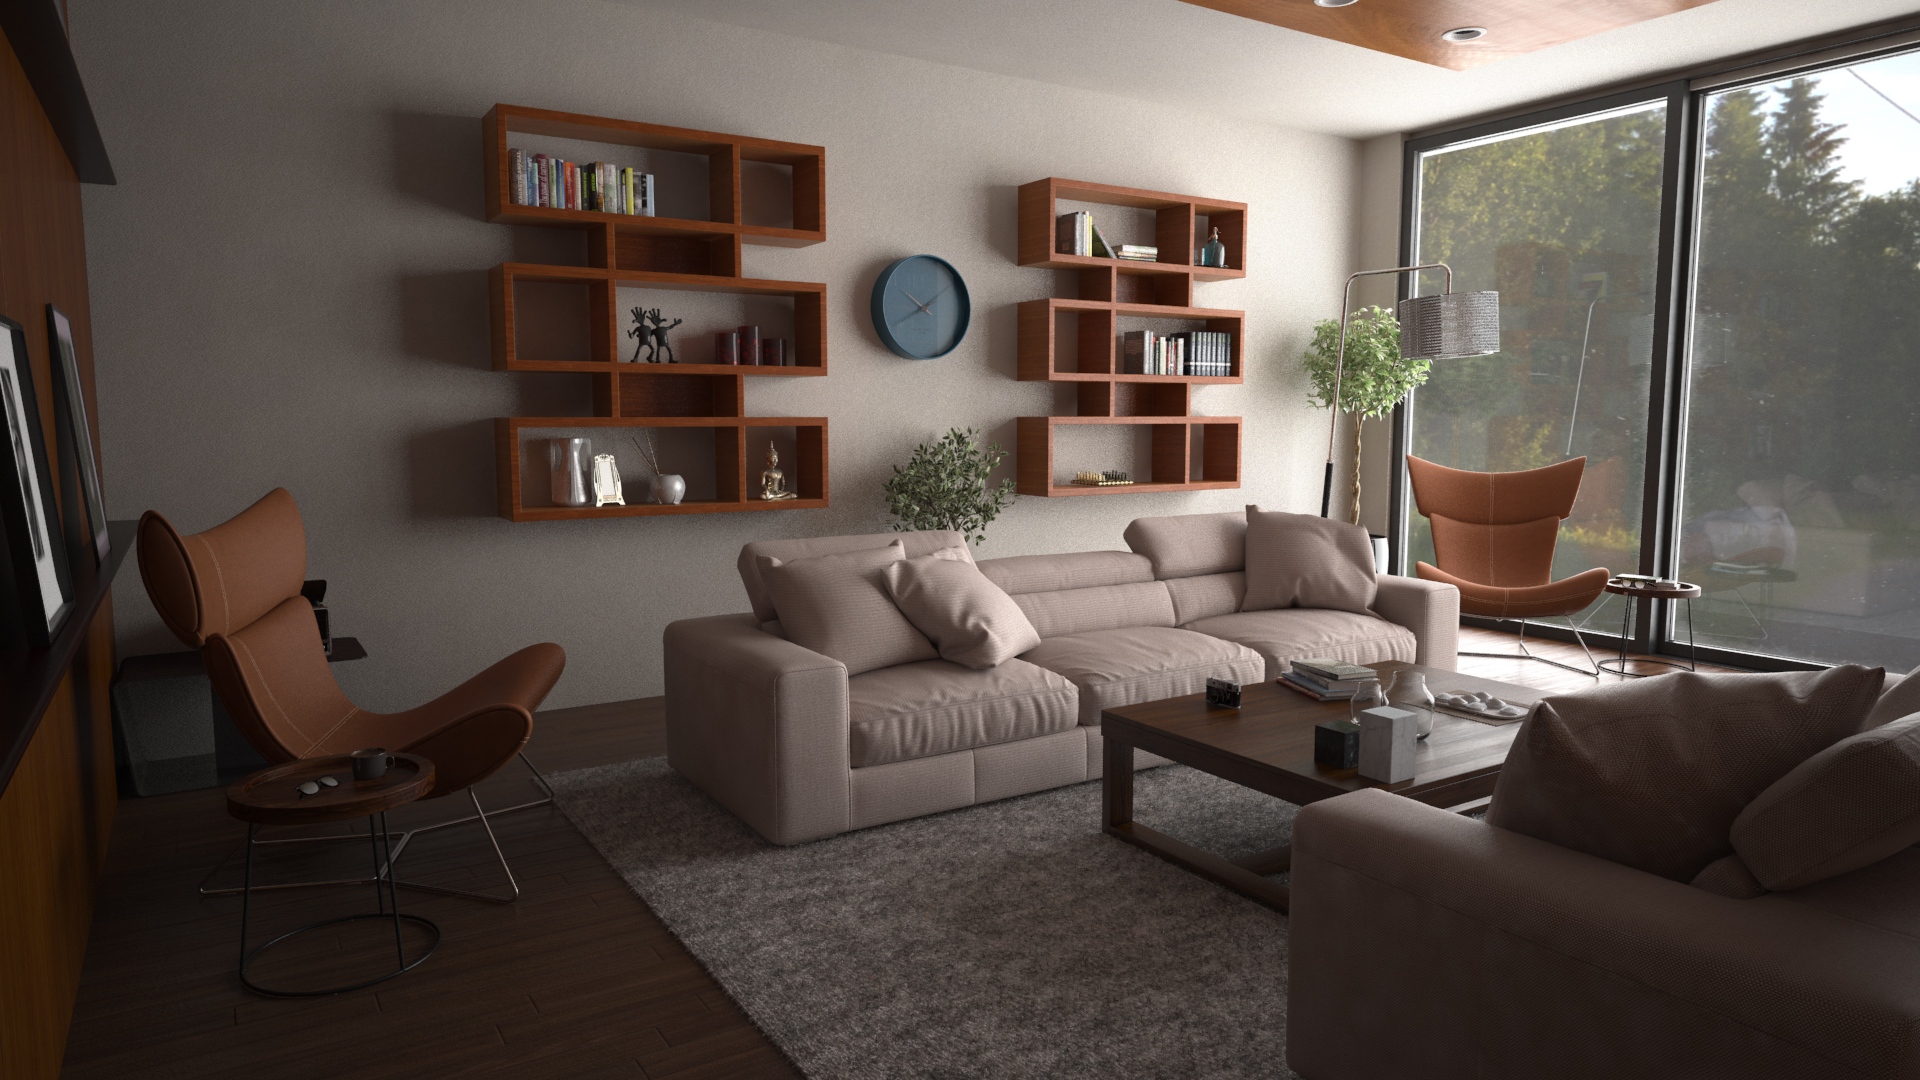 A 3D Visualization Project Of A Small House Living Room In The Mountains.  The House Is Located In Borovets, Bulgaria.